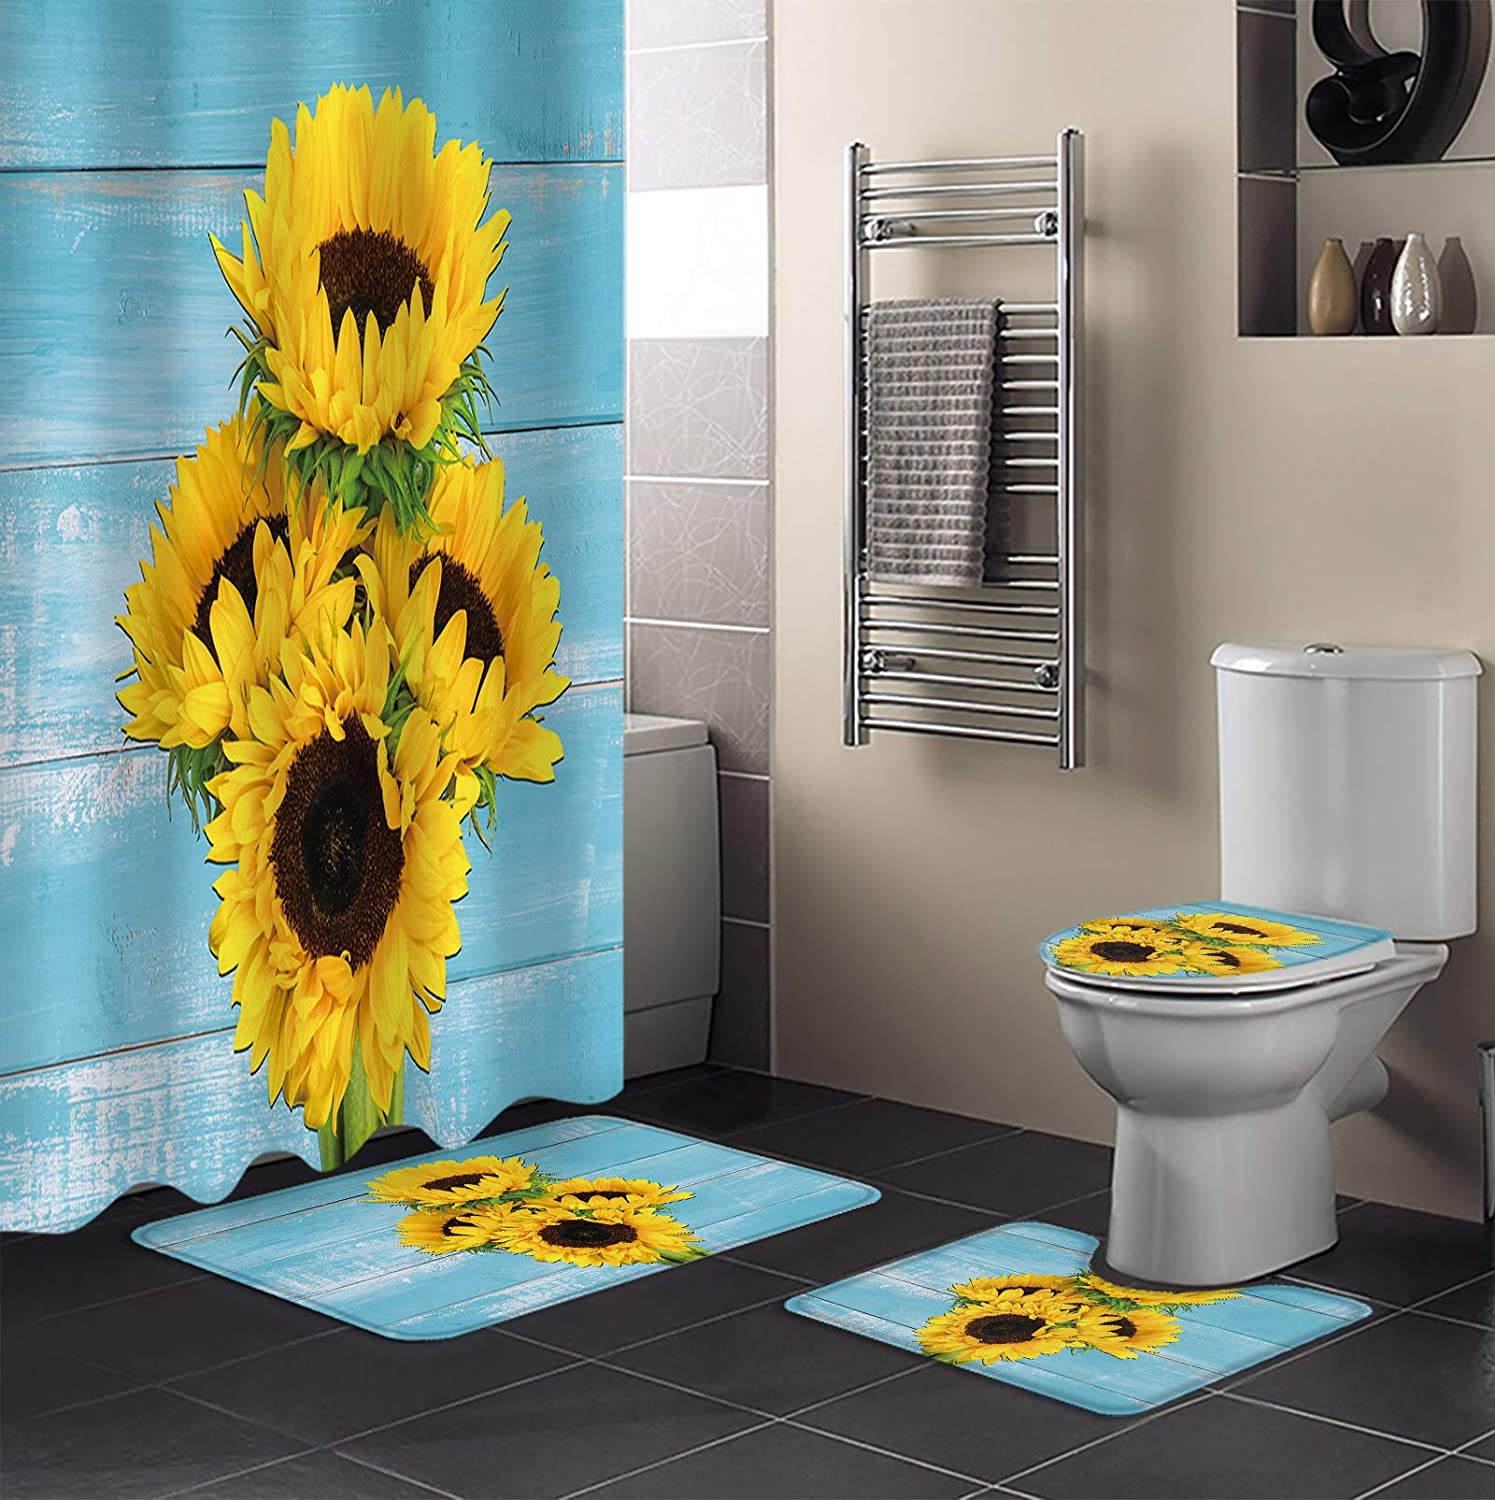 MUSEDAY 4 Piece Shower Curtain Sets Miami Mall New Free Shipping Toilet Non-Slip with Rugs L